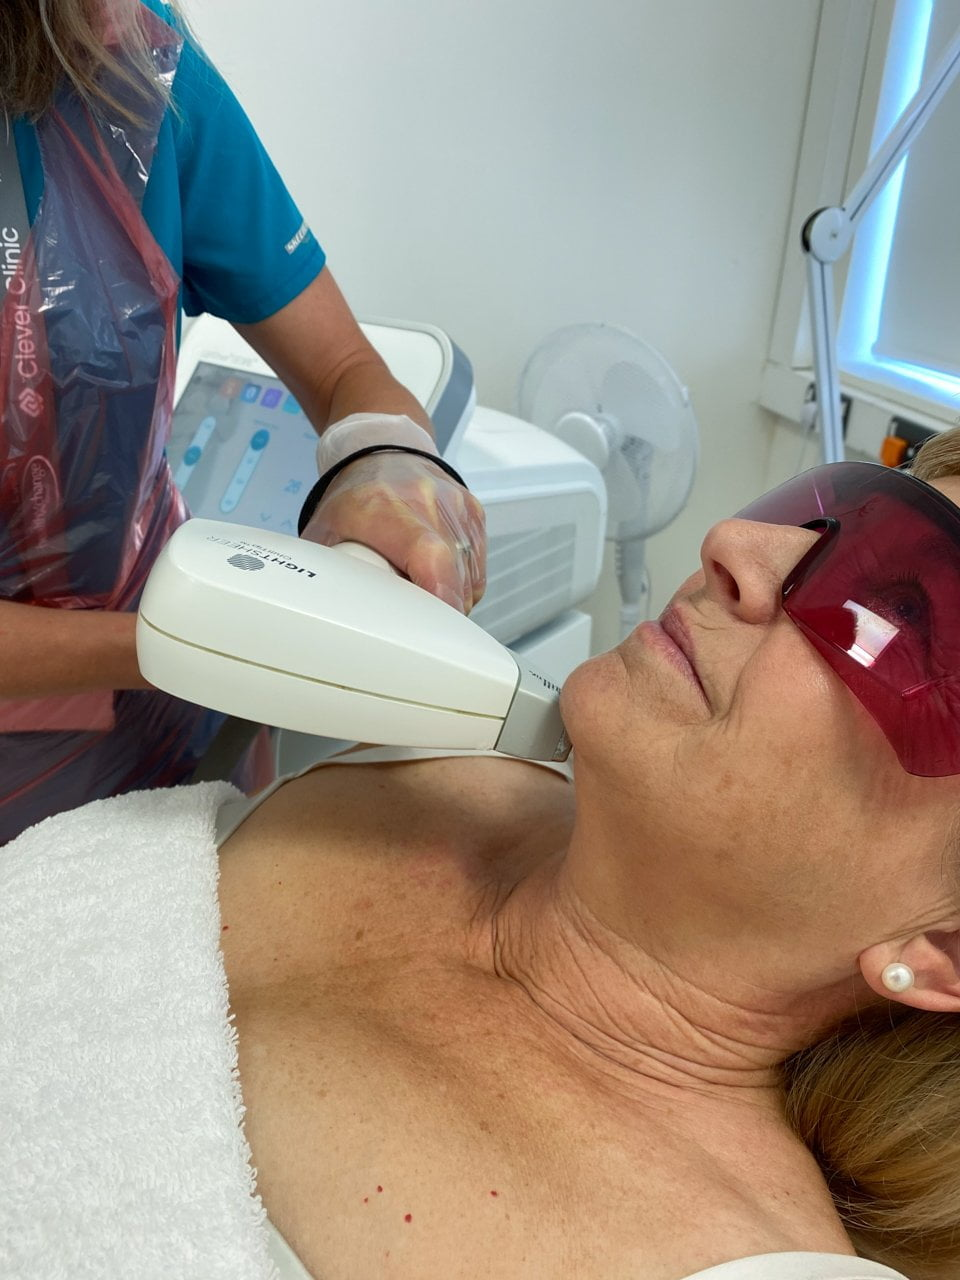 Laser hair removal on the face